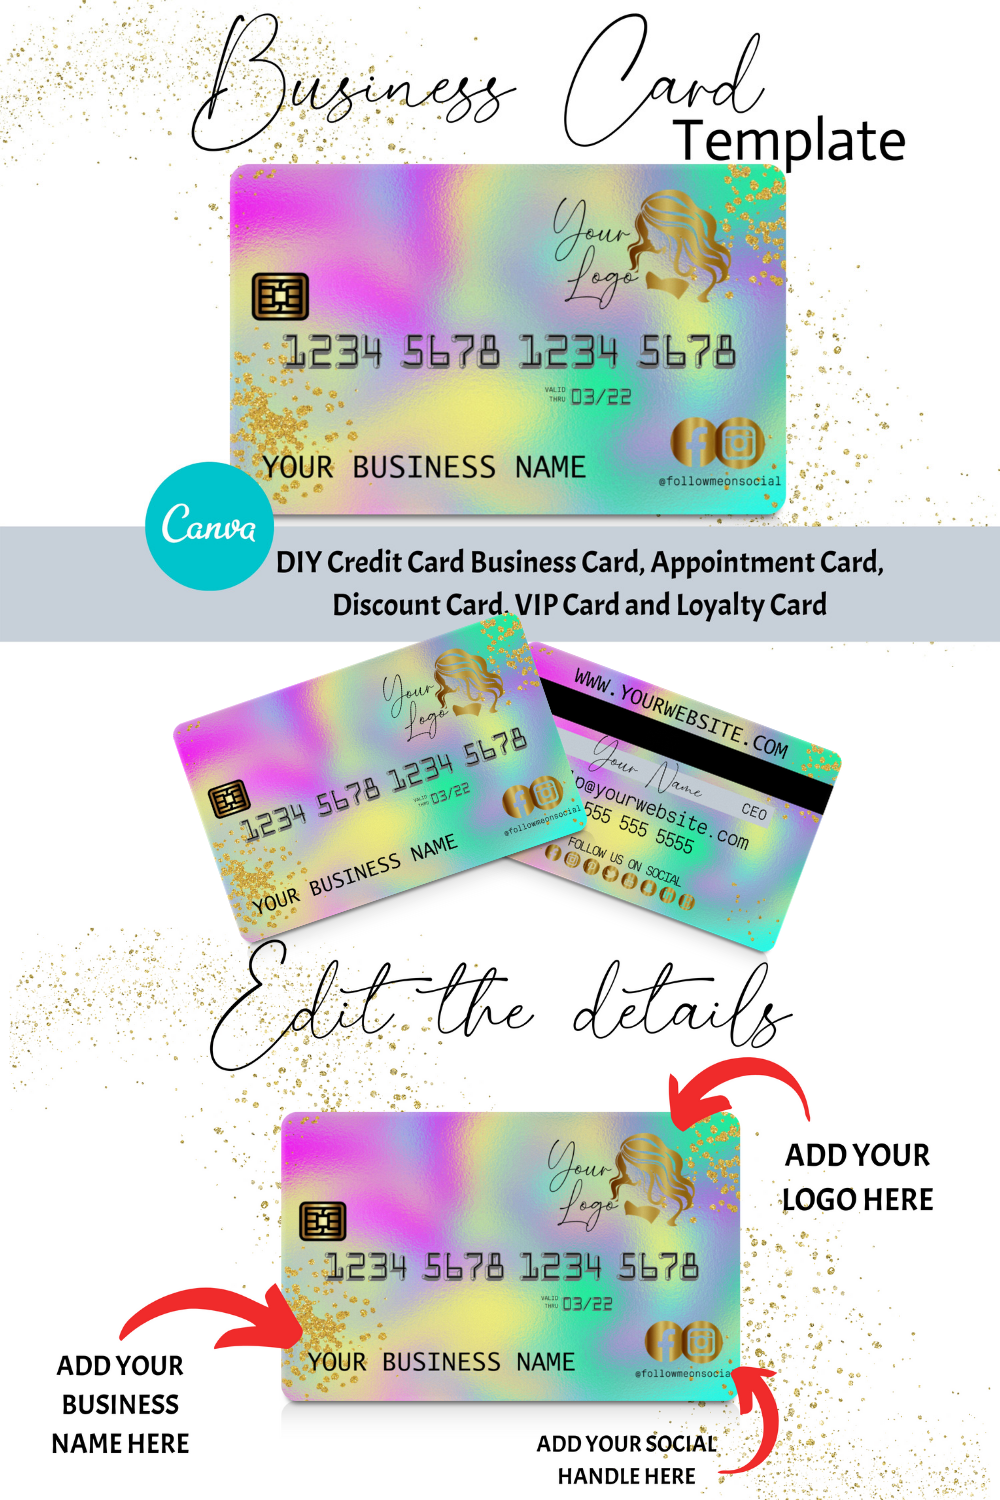 Diy Holographic Credit Card Business Cards Canva Template Business Card Design Appointment Card Loyalty Card Instant Access Credit Card Design Business Card Inspiration Business Credit Cards